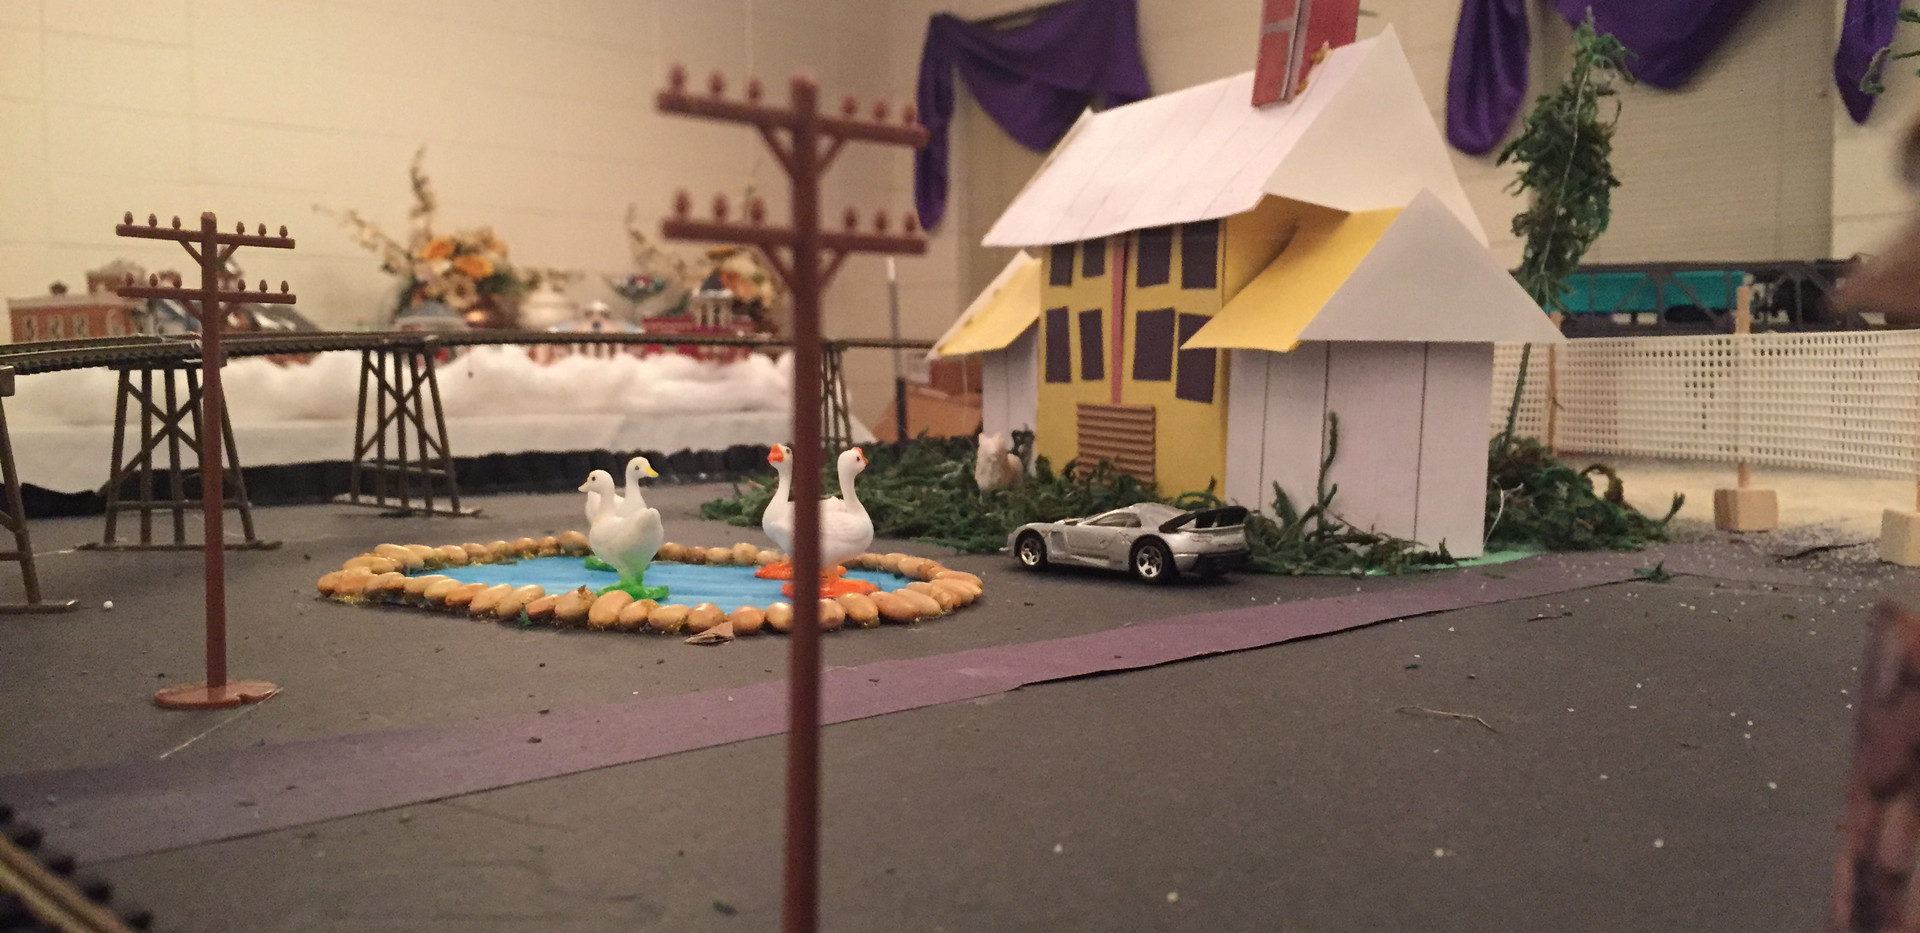 Added ducks and swans to the farmhouse pond. Also, the farmhouse owner has a Lamborgini.